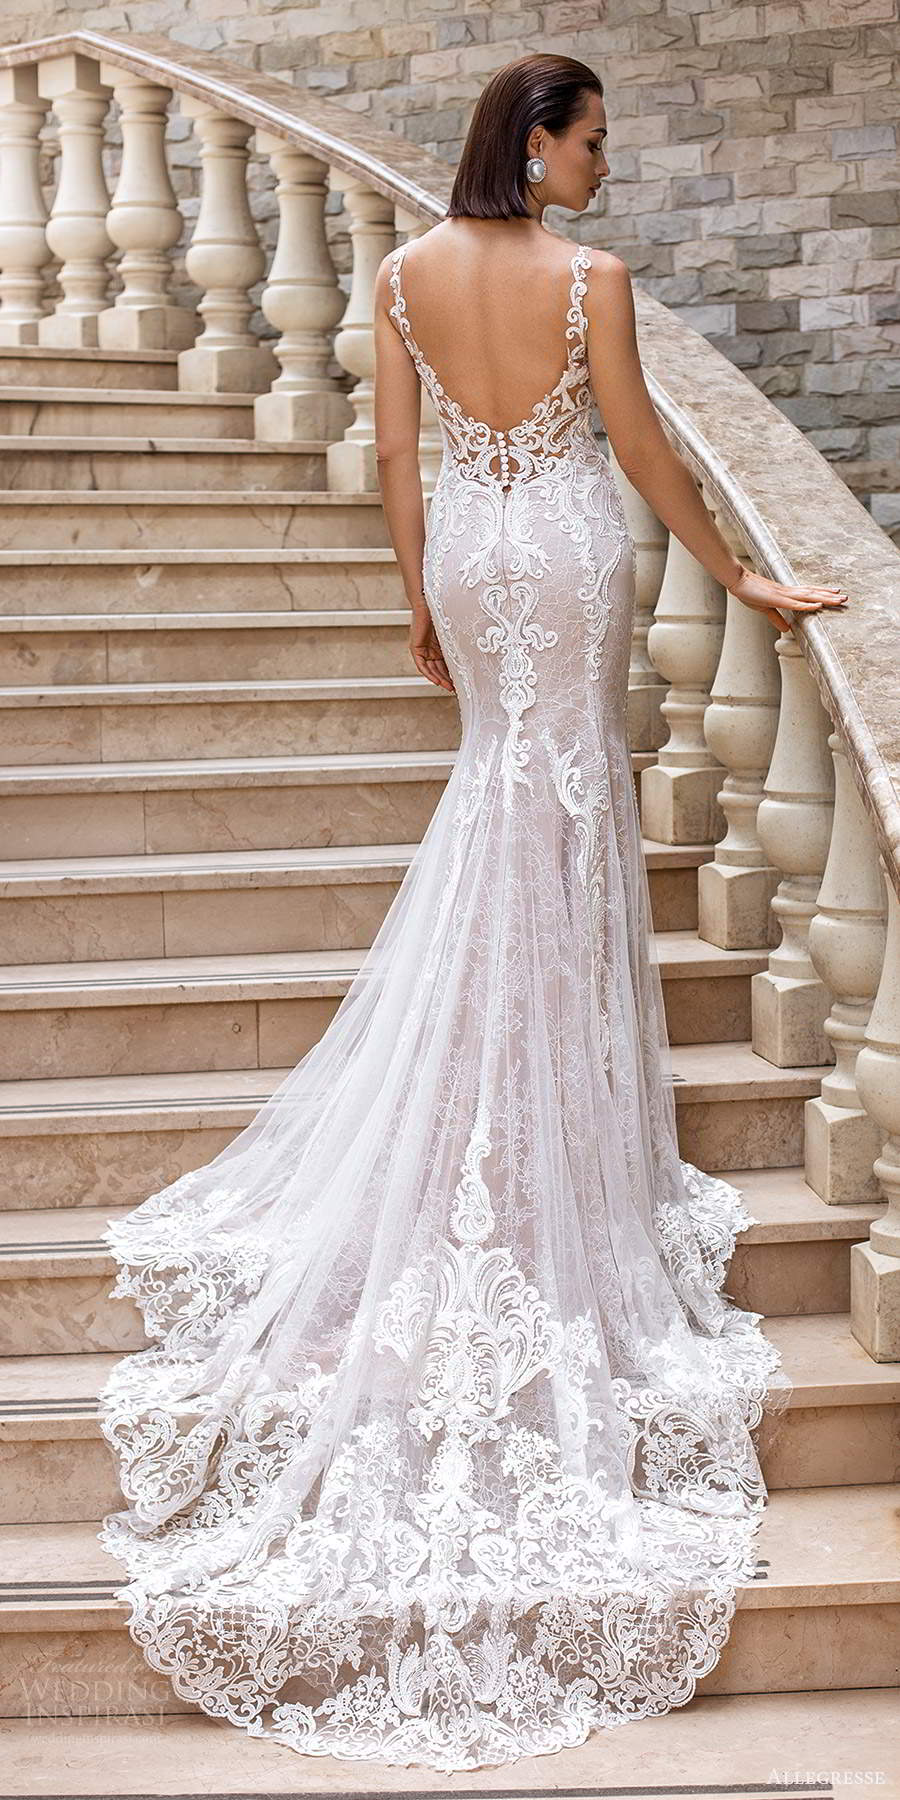 allegresse 2021 bridal sleeveless straps plunging sweetheart neckline fully embellished lace fit flare mermaid wedding dress chapel train blush scoop back (8) bv